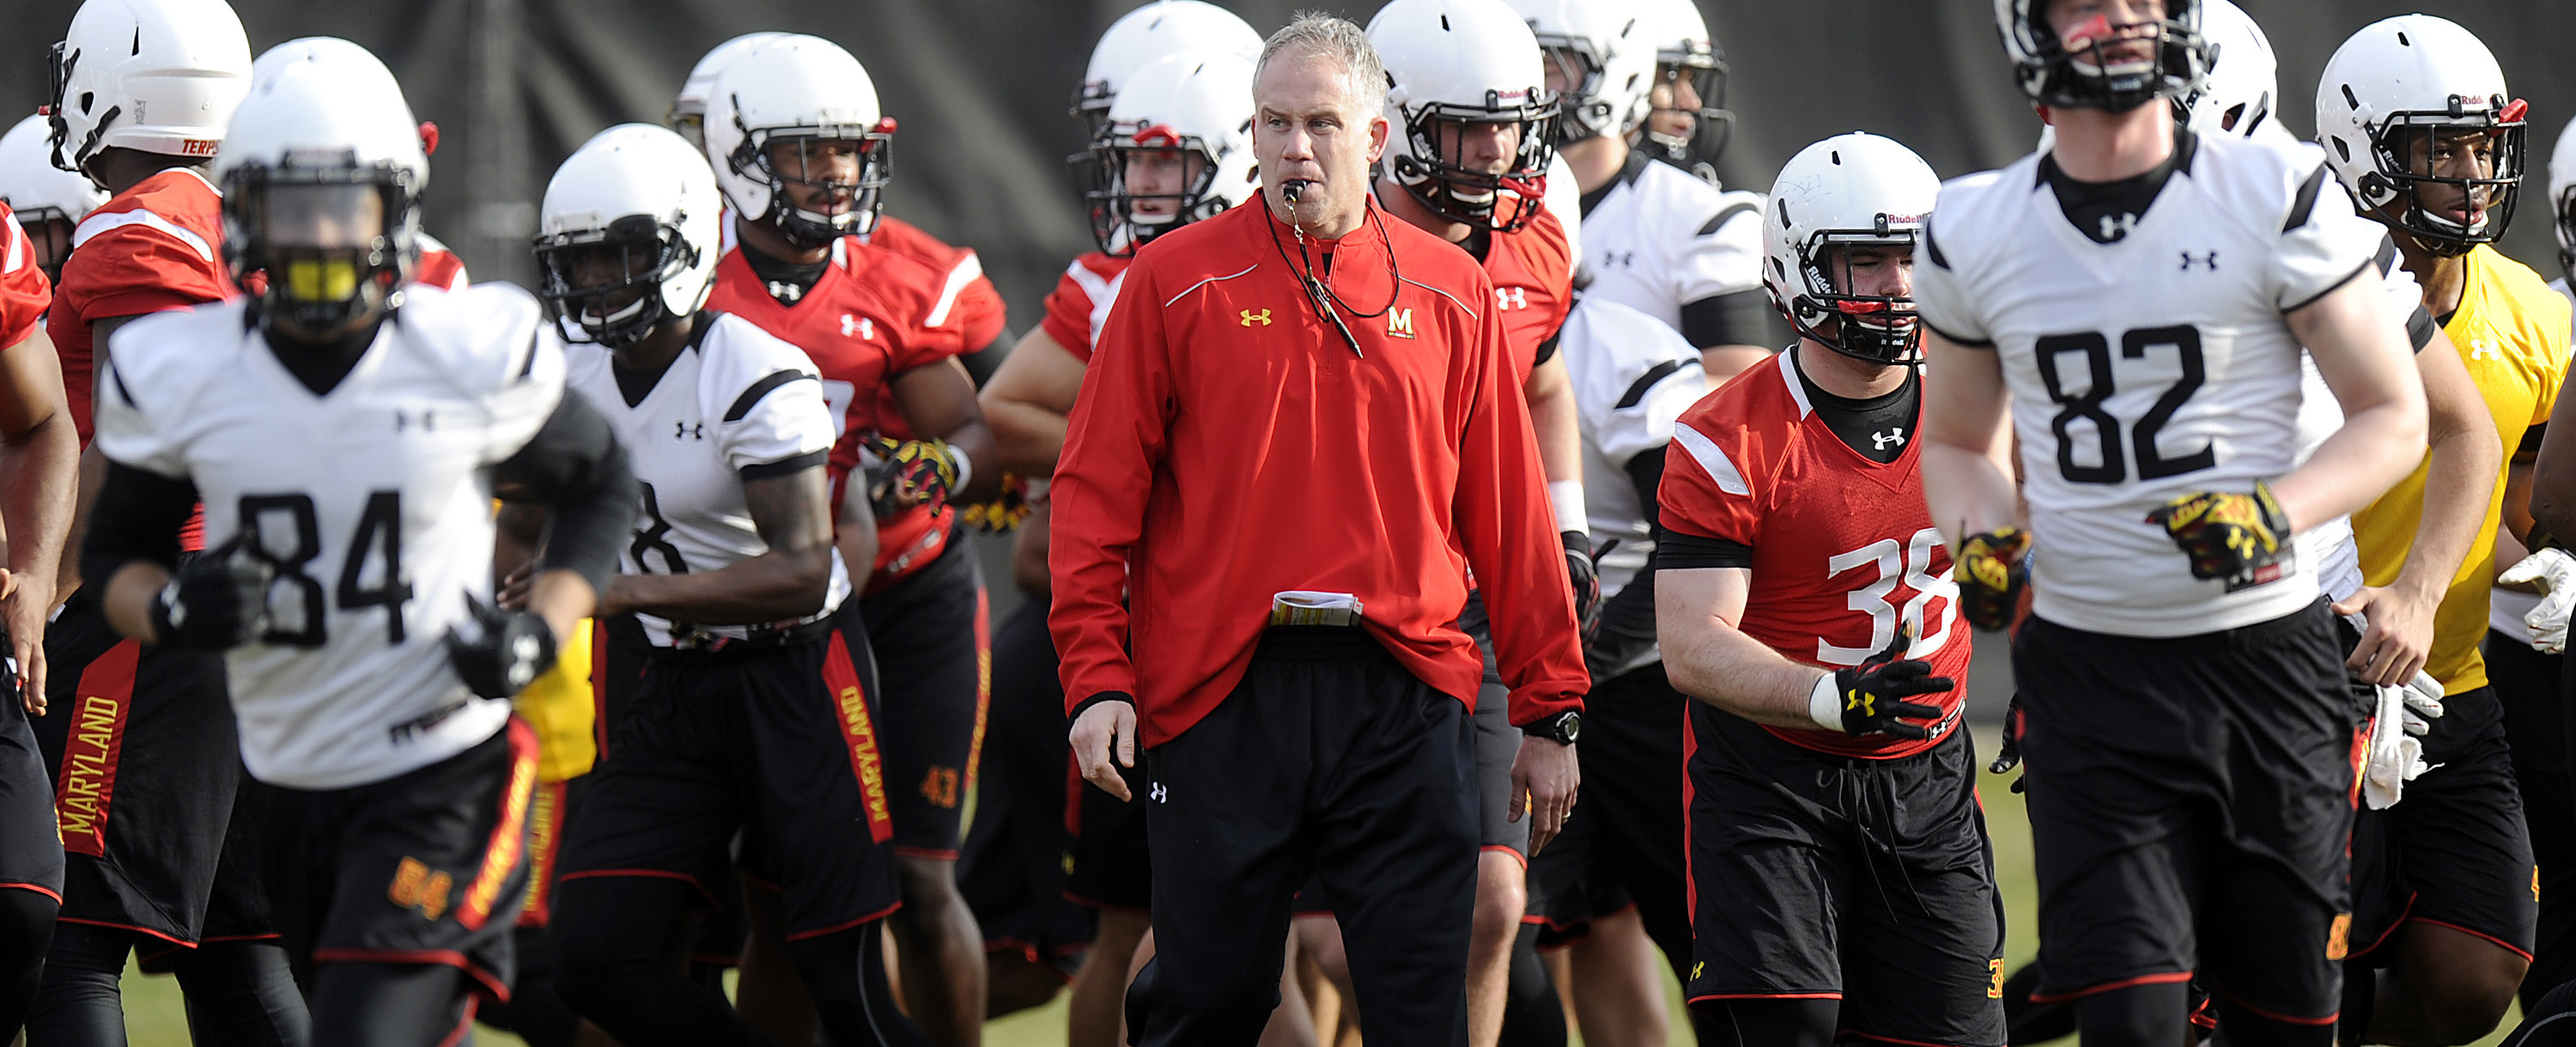 maryland to hold open practice on august 19 - university of maryland